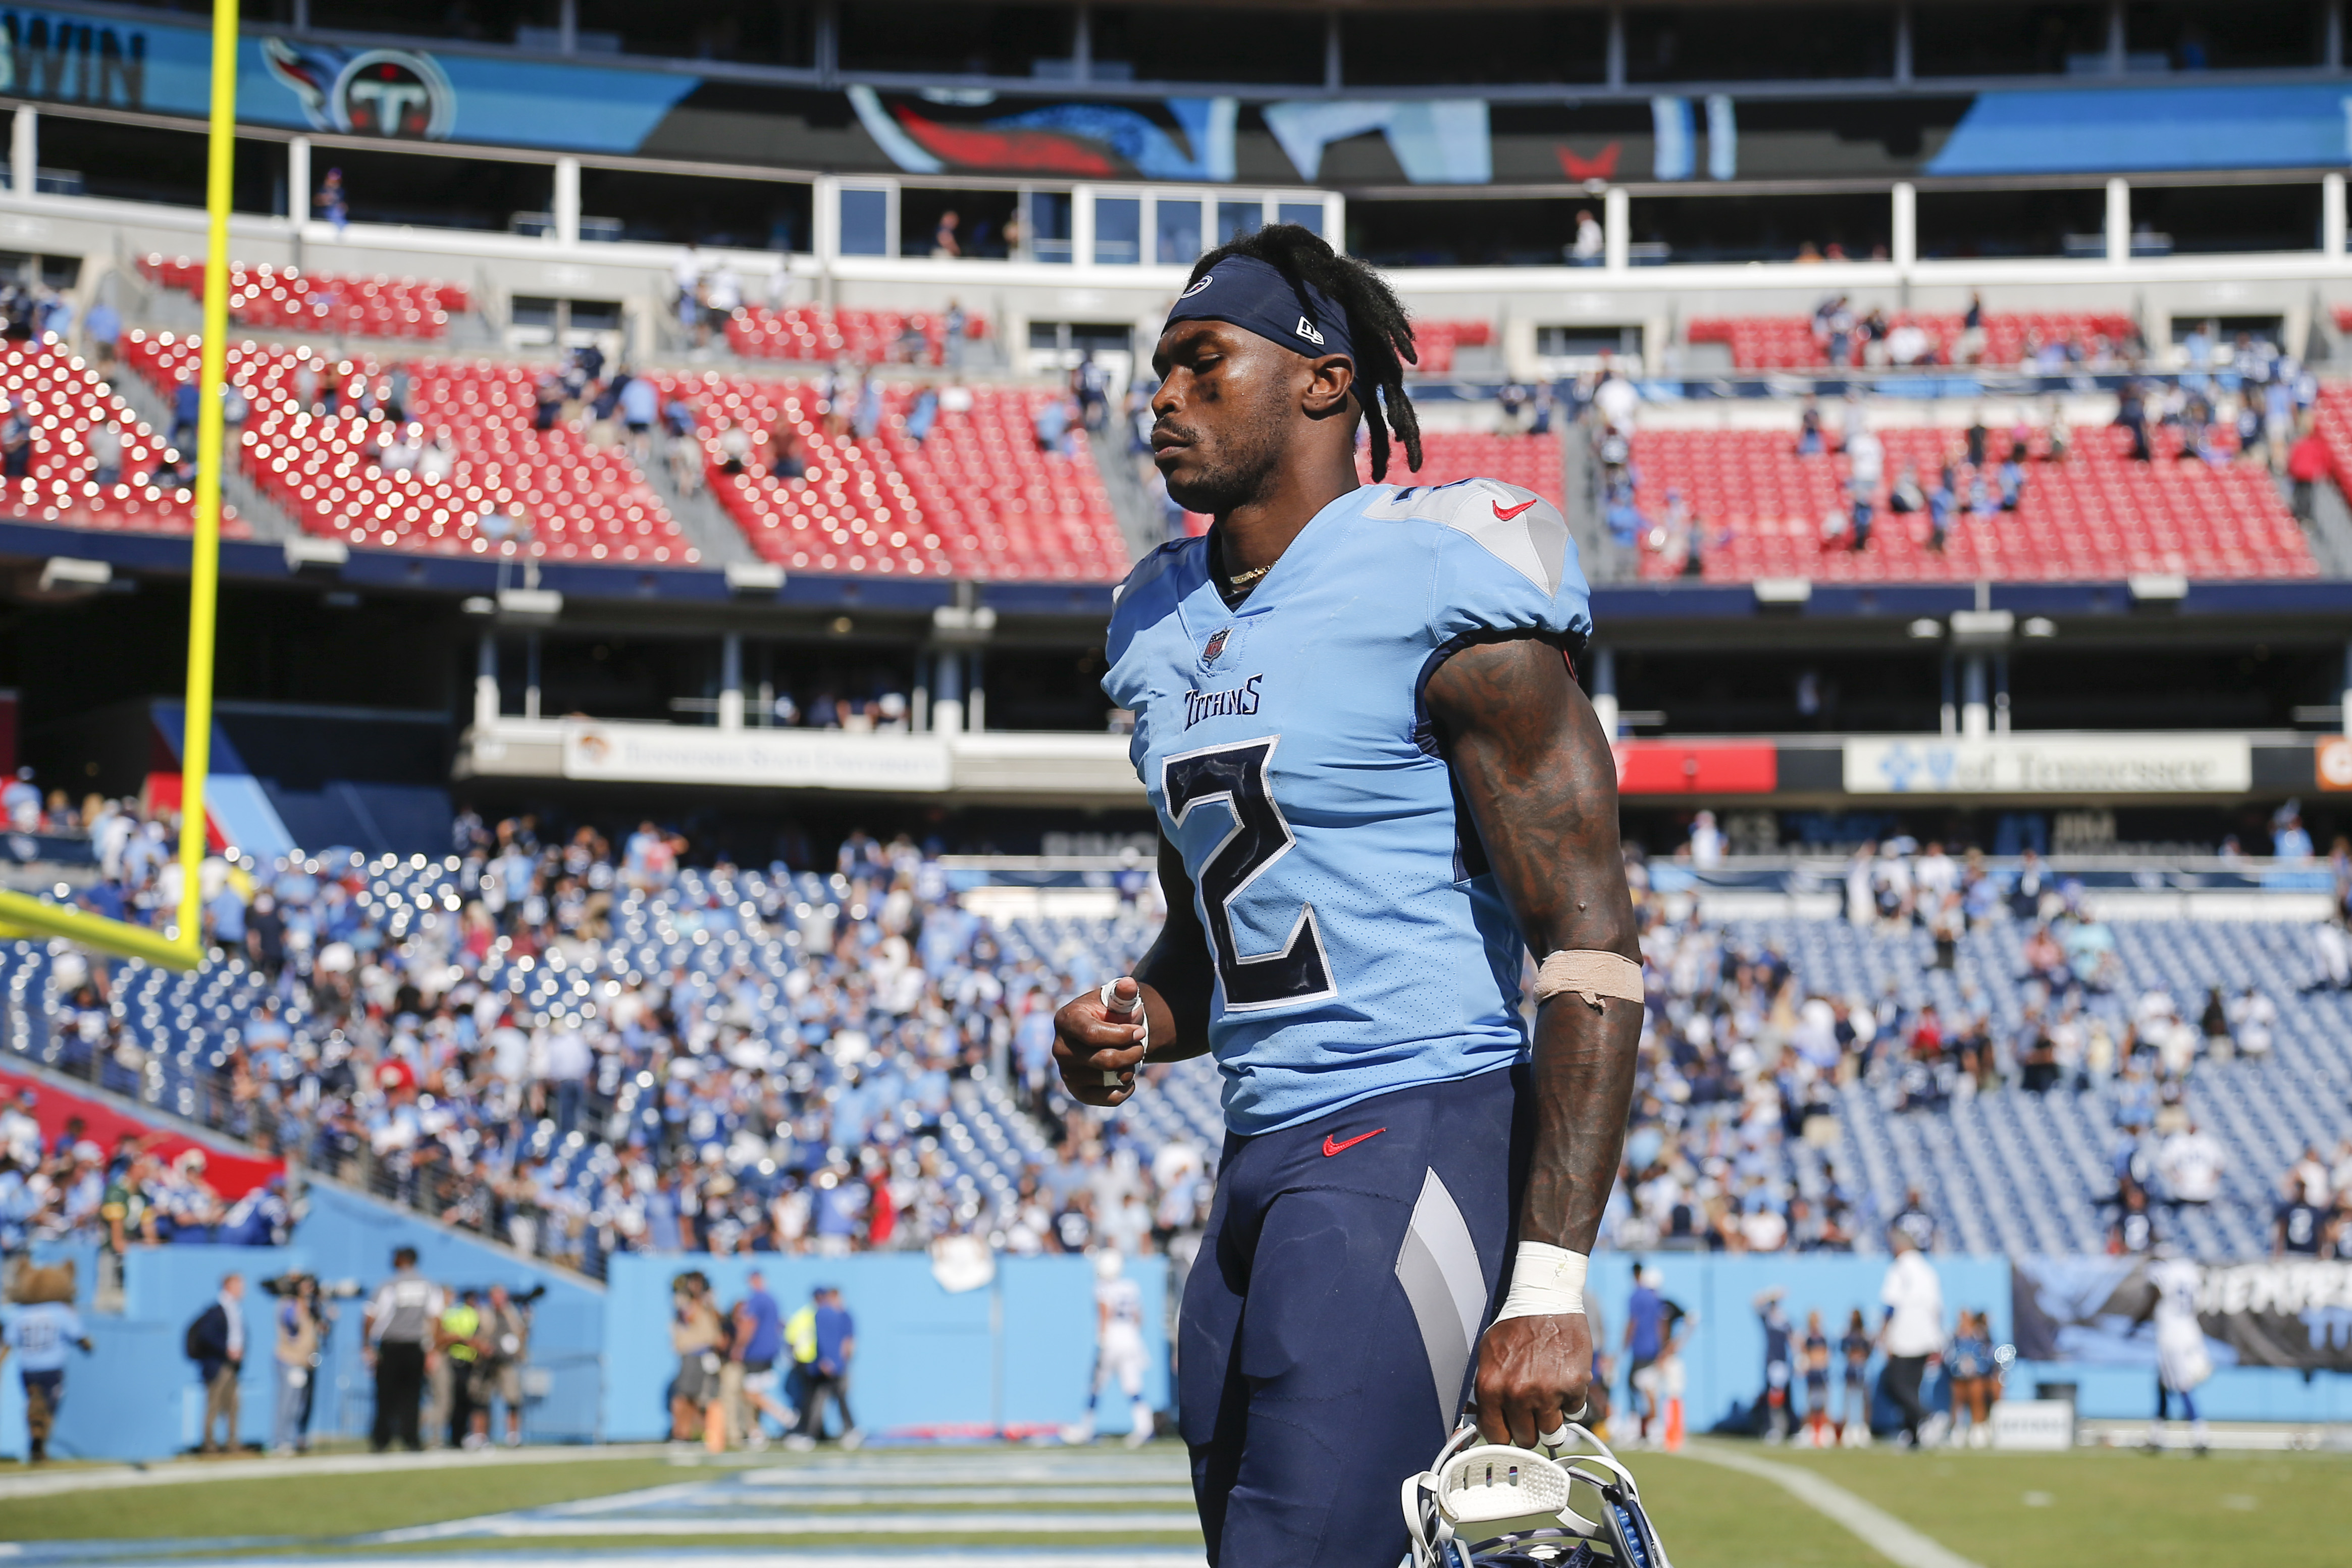 Julio Jones #2 of the Tennessee Titans walks off the field after the game against the Indianapolis Colts at Nissan Stadium on September 26, 2021 in Nashville, Tennessee.